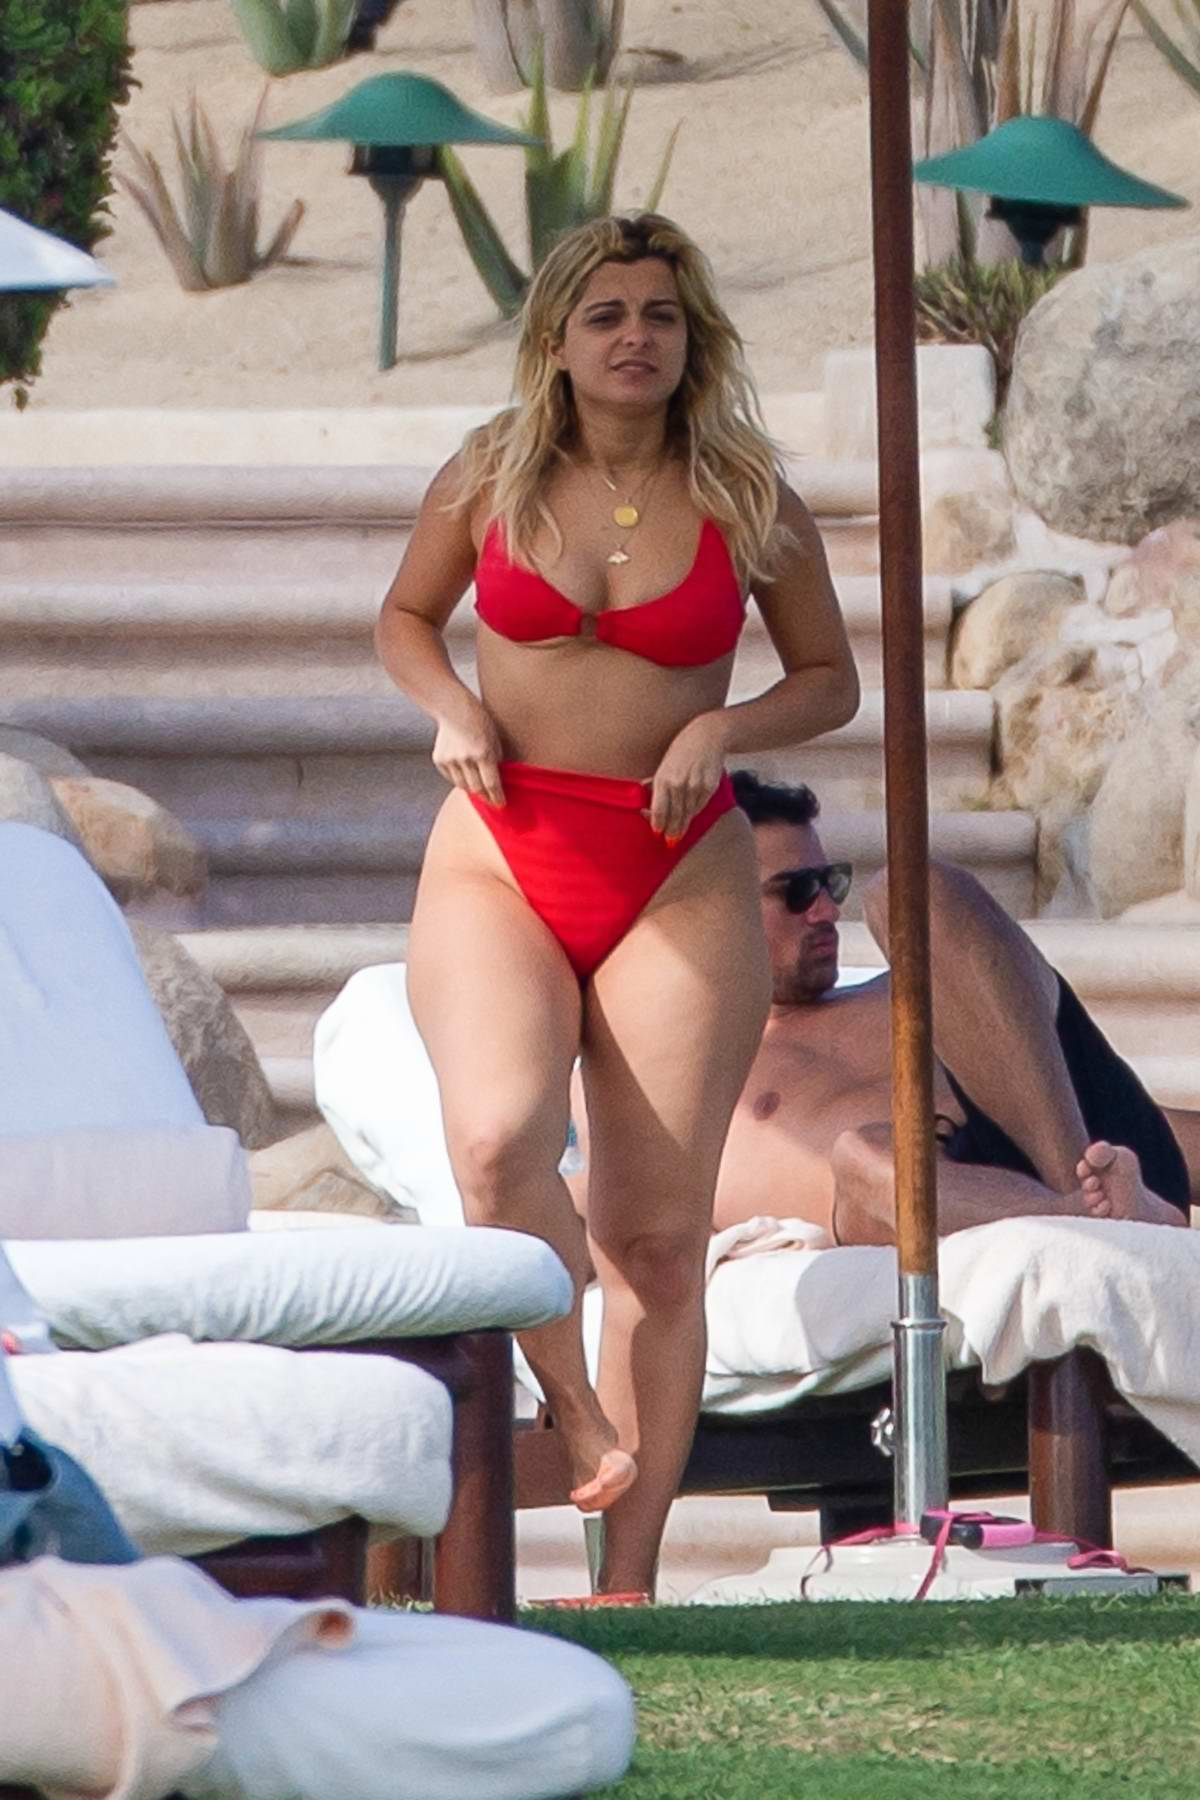 Bebe Rexha looks stunning in a red bikini during a romantic getaway with boyfriend Keyan Safyari in Cabo San Lucas, Mexico